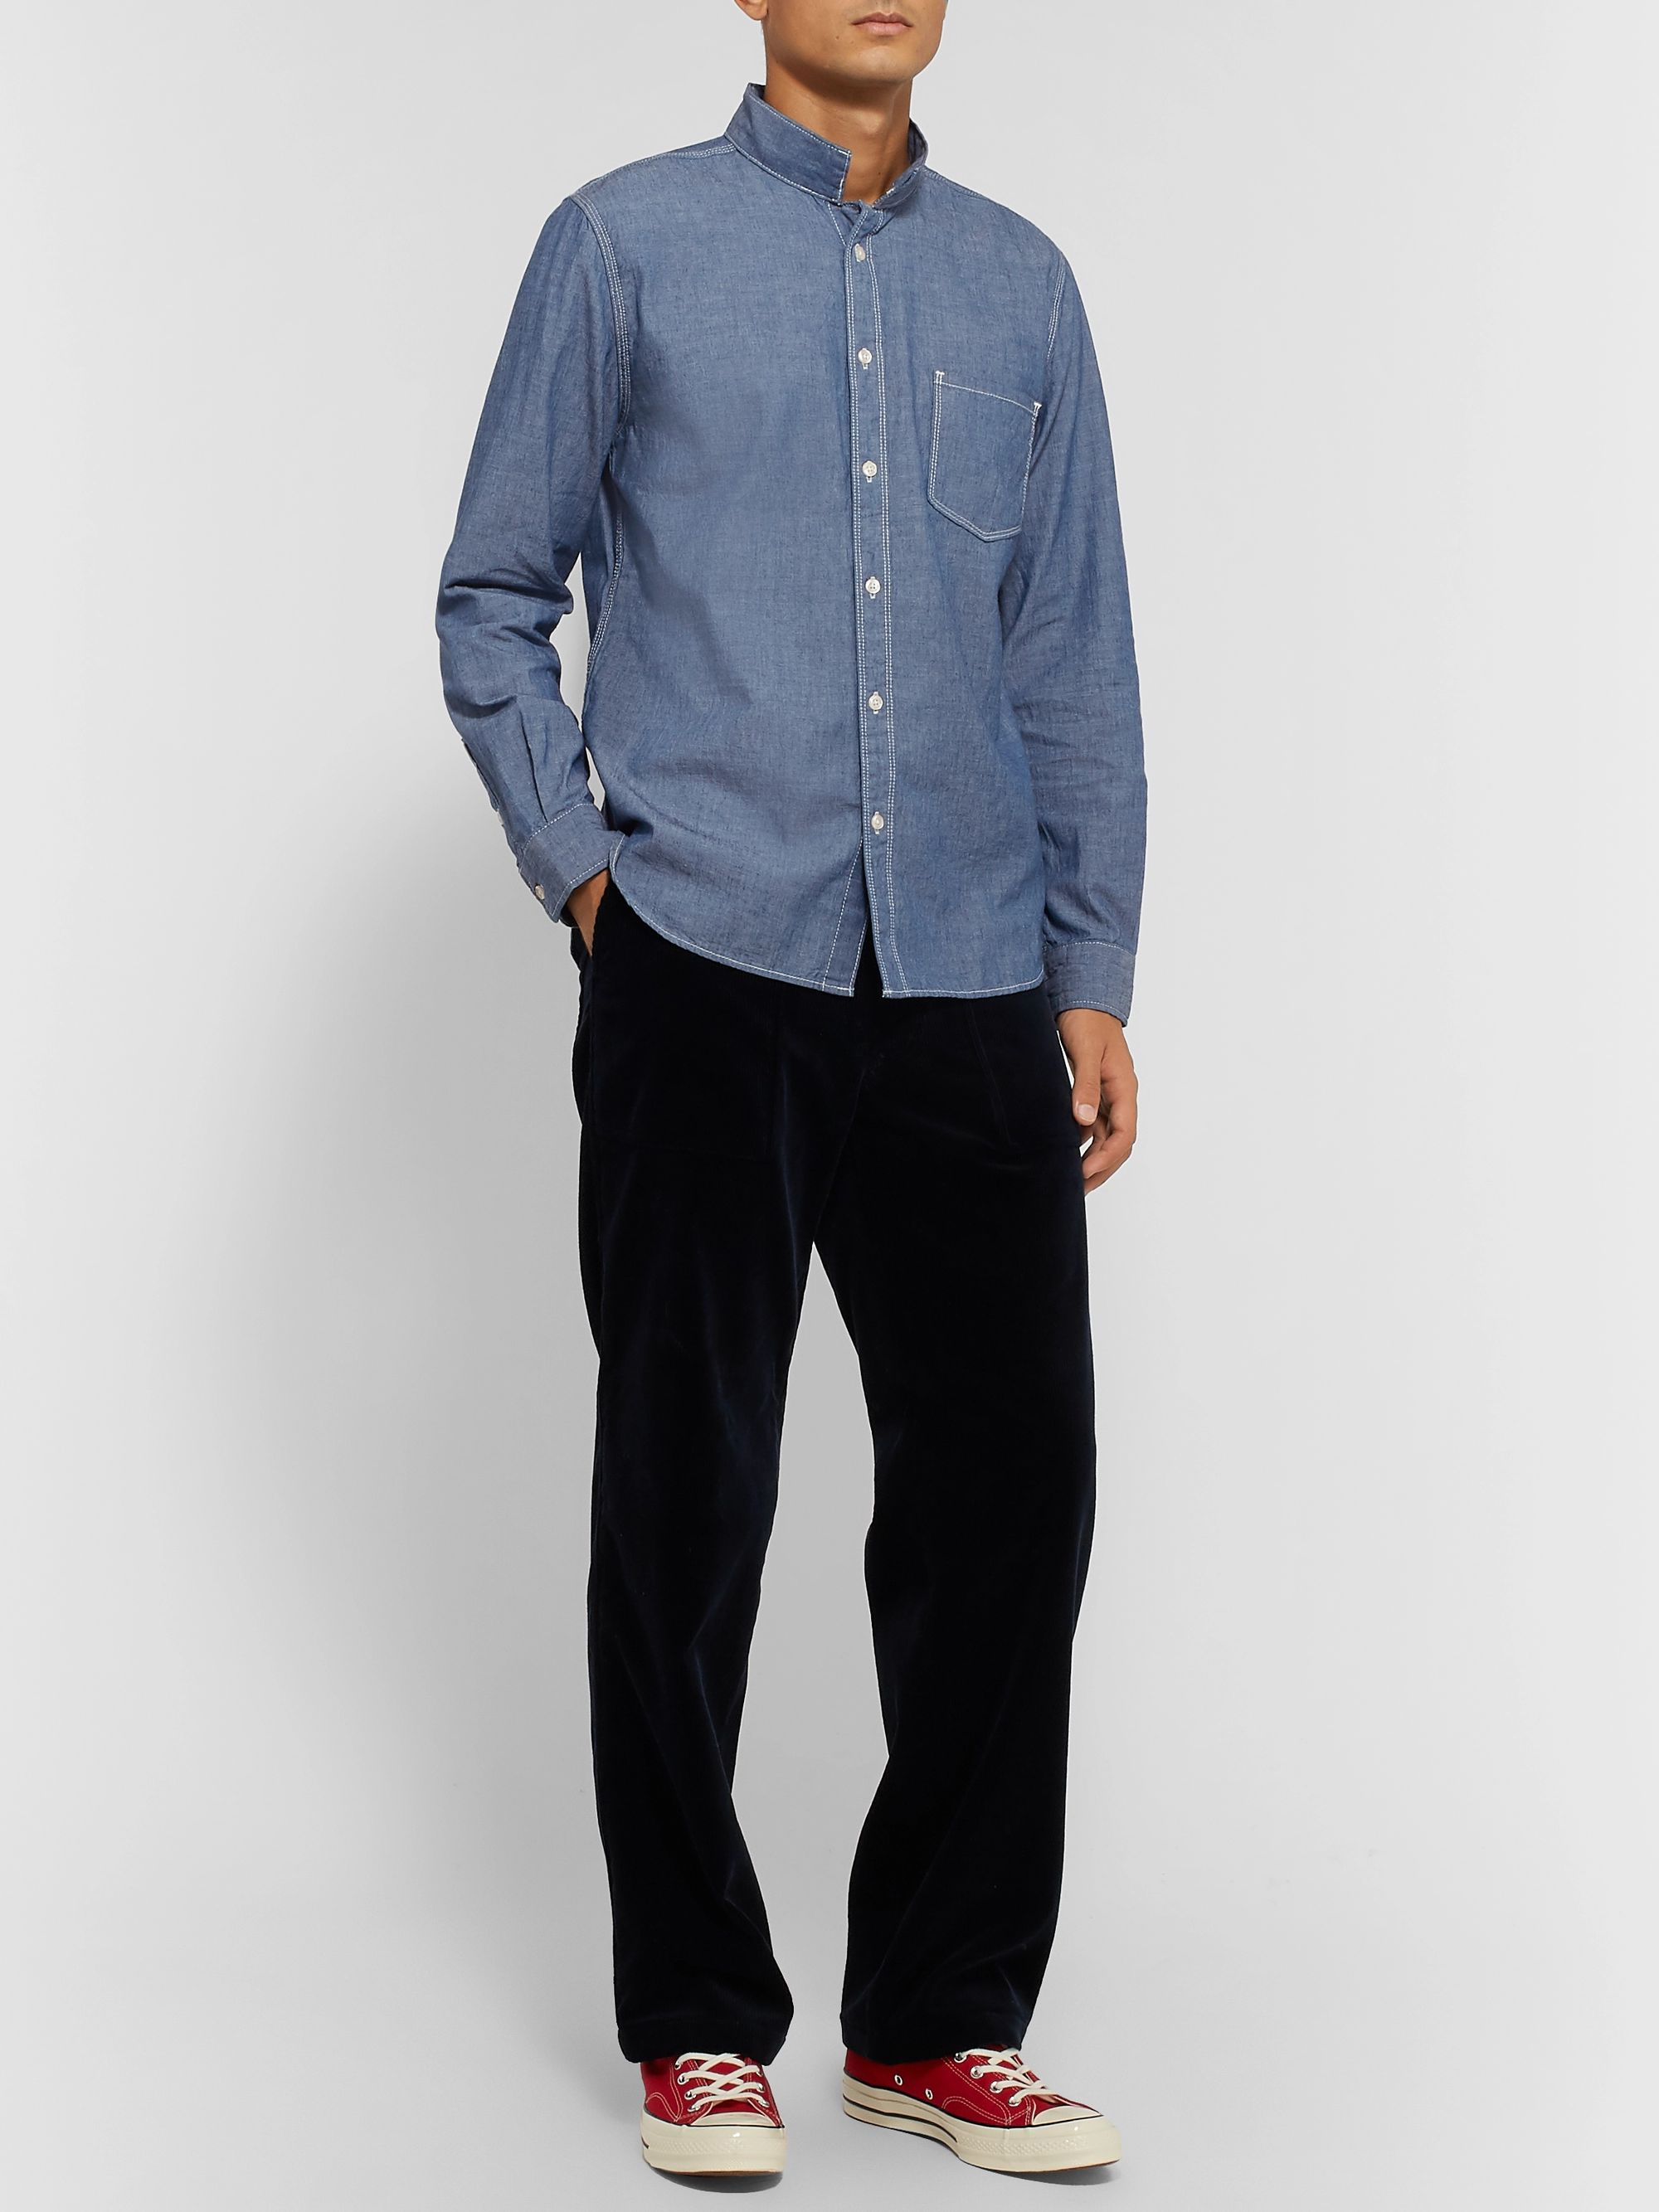 Barbour White Label White Label Mile Castle Mandarin-Collar Cotton-Chambray Shirt